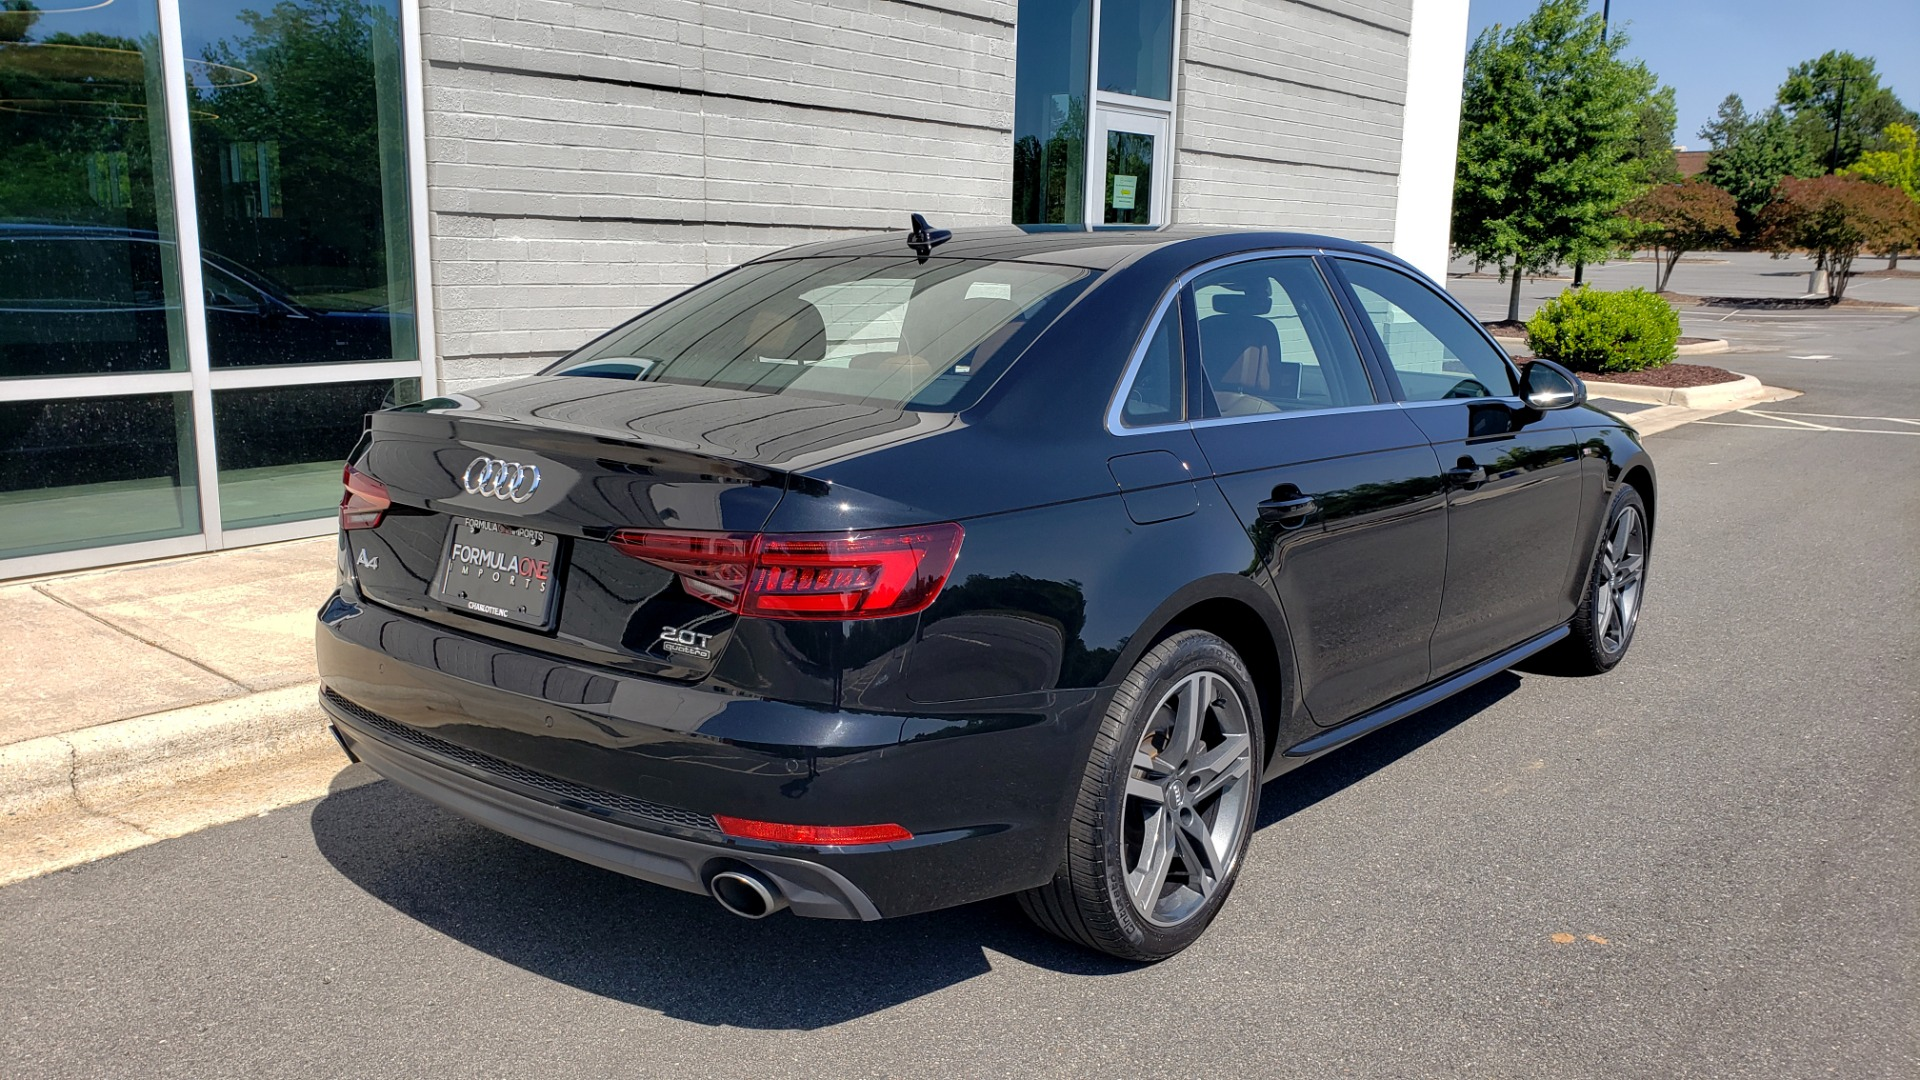 Used 2018 Audi A4 PREMIUM PLUS 2.0T / NAV / SUNROOF / B&O SND / CLD WTHR / REARVIEW for sale $30,695 at Formula Imports in Charlotte NC 28227 2